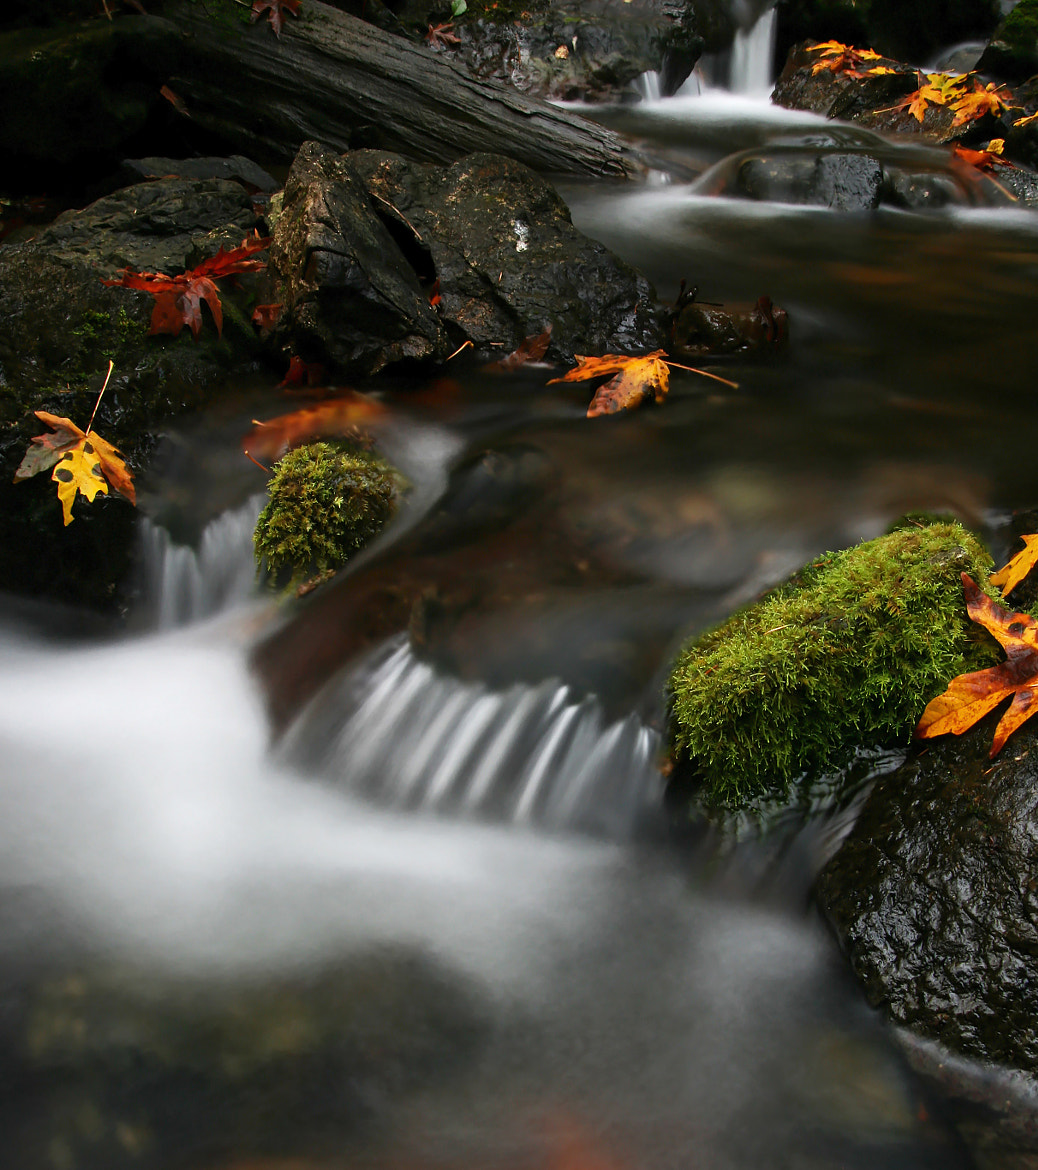 Photograph The Fall by Lance McCoy on 500px